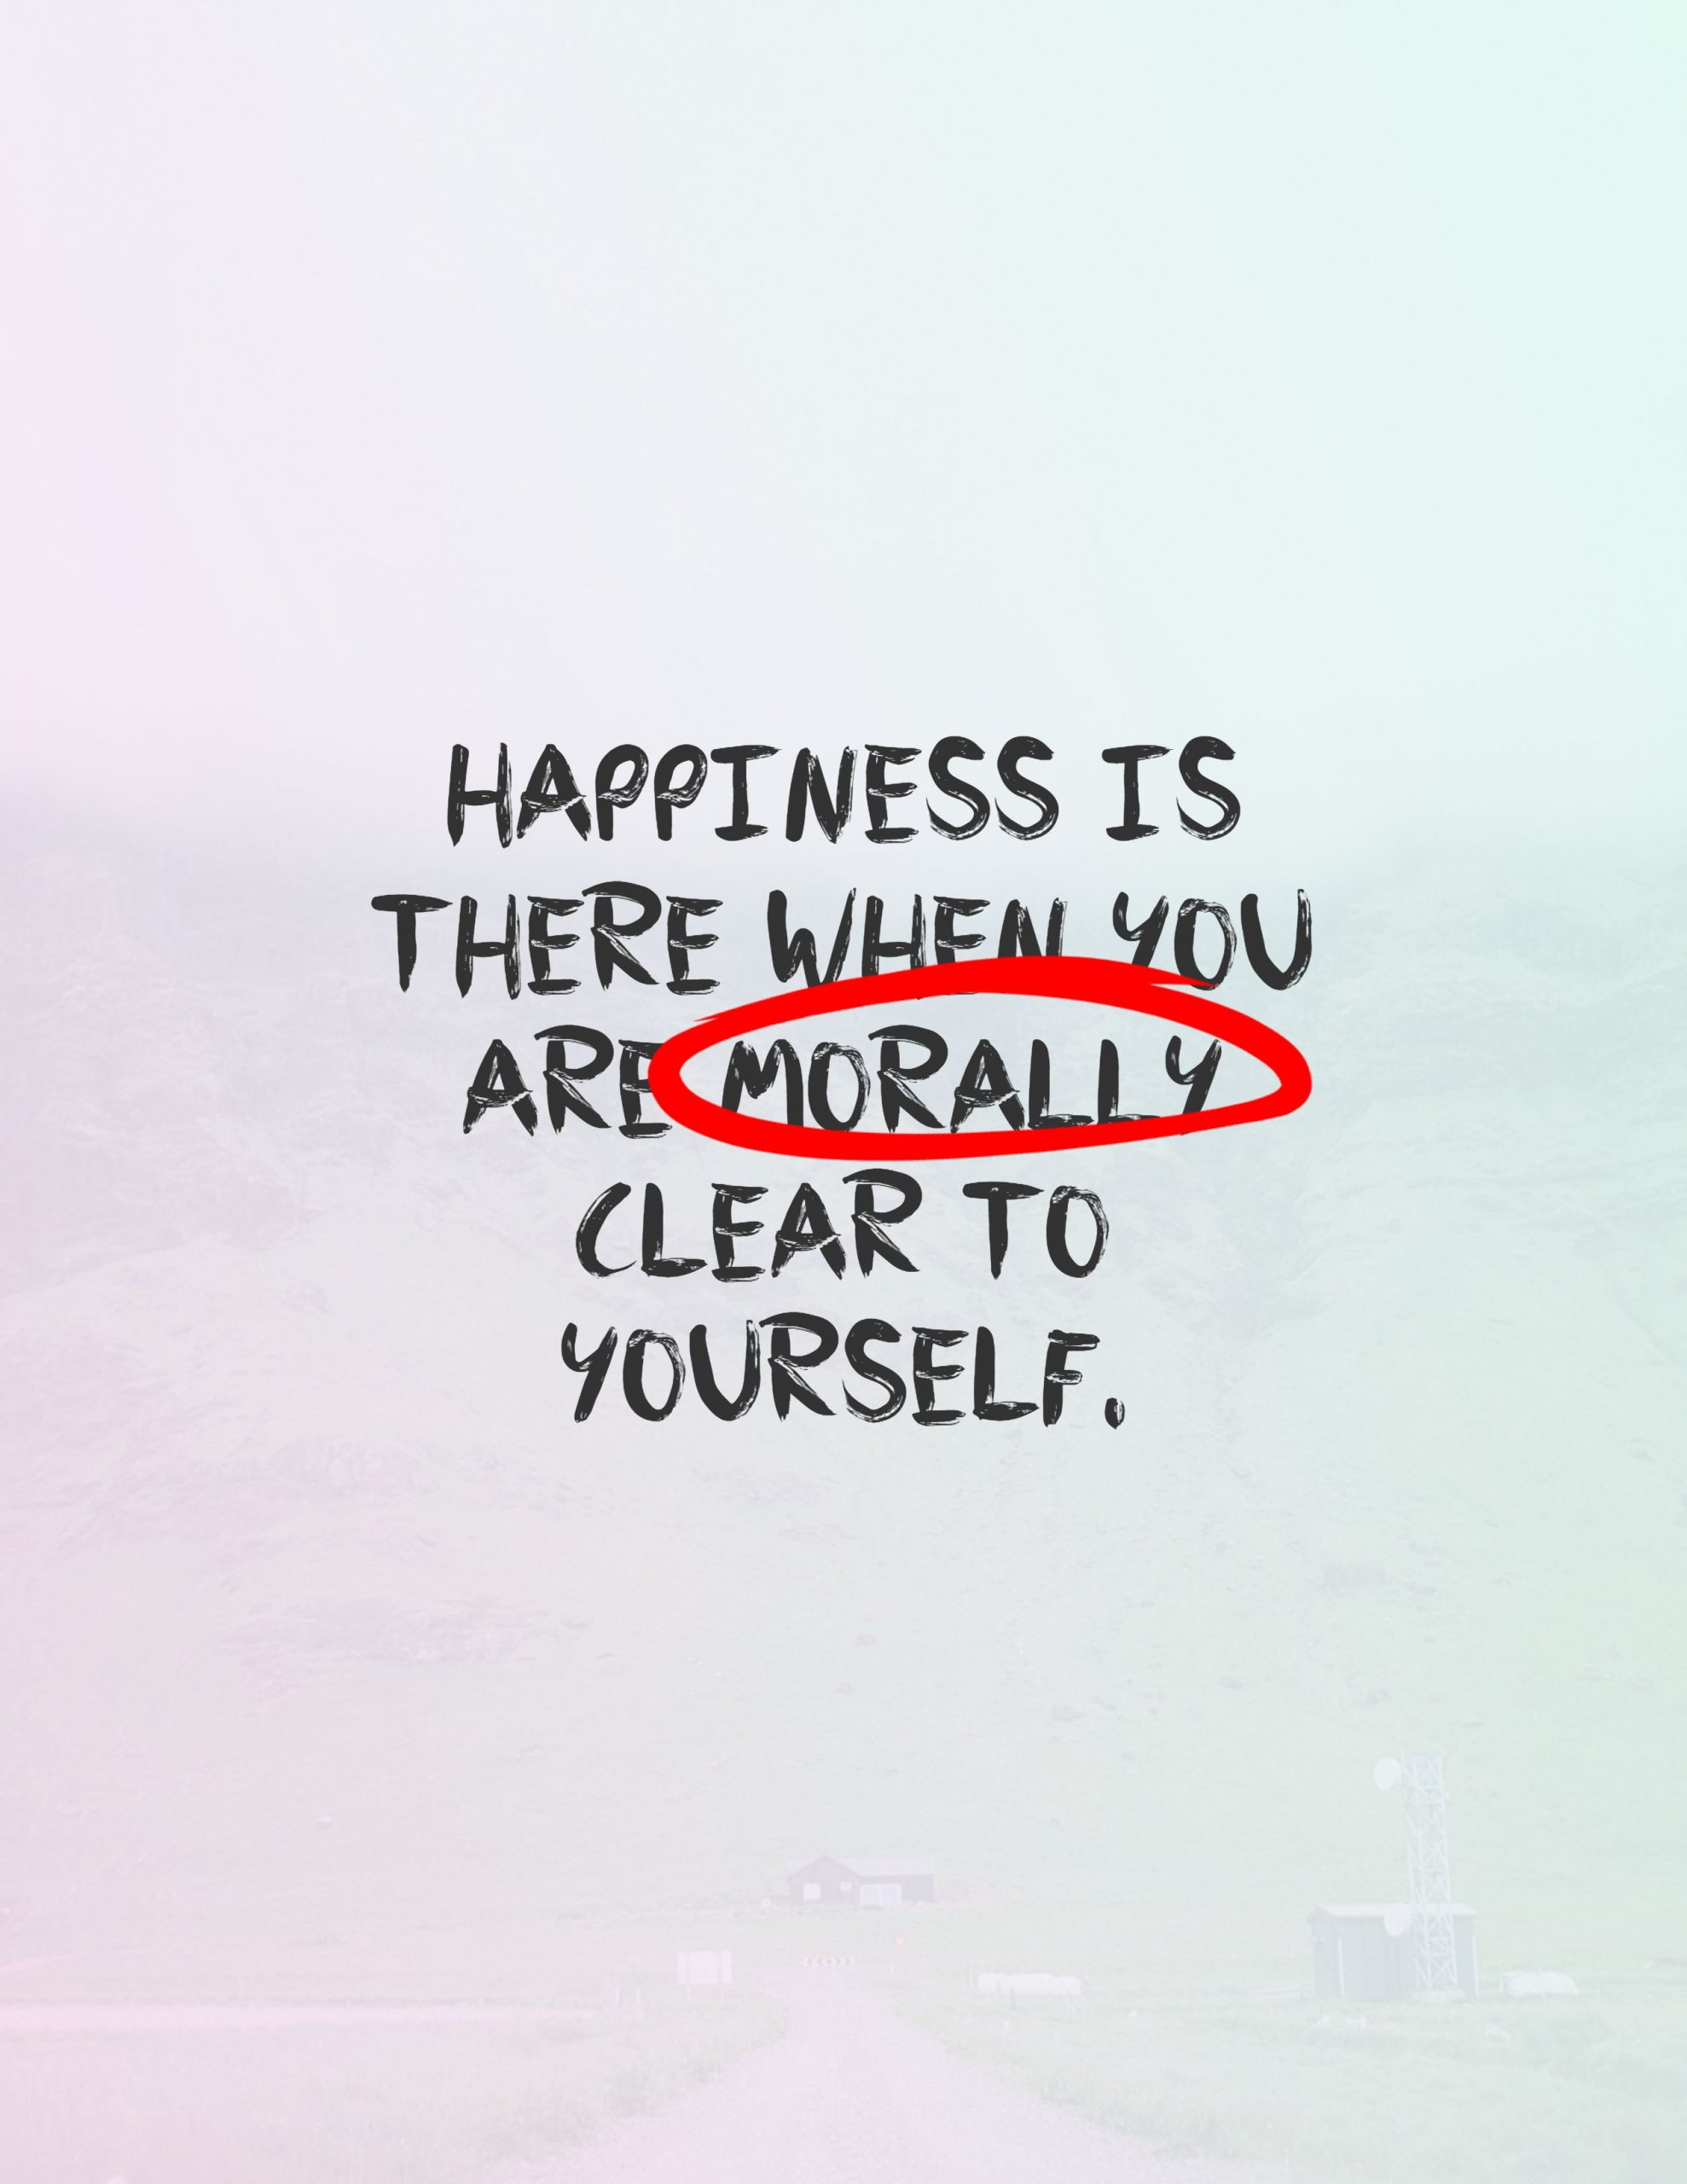 Quotes image of Happiness is there when you are morally clear to yourself.